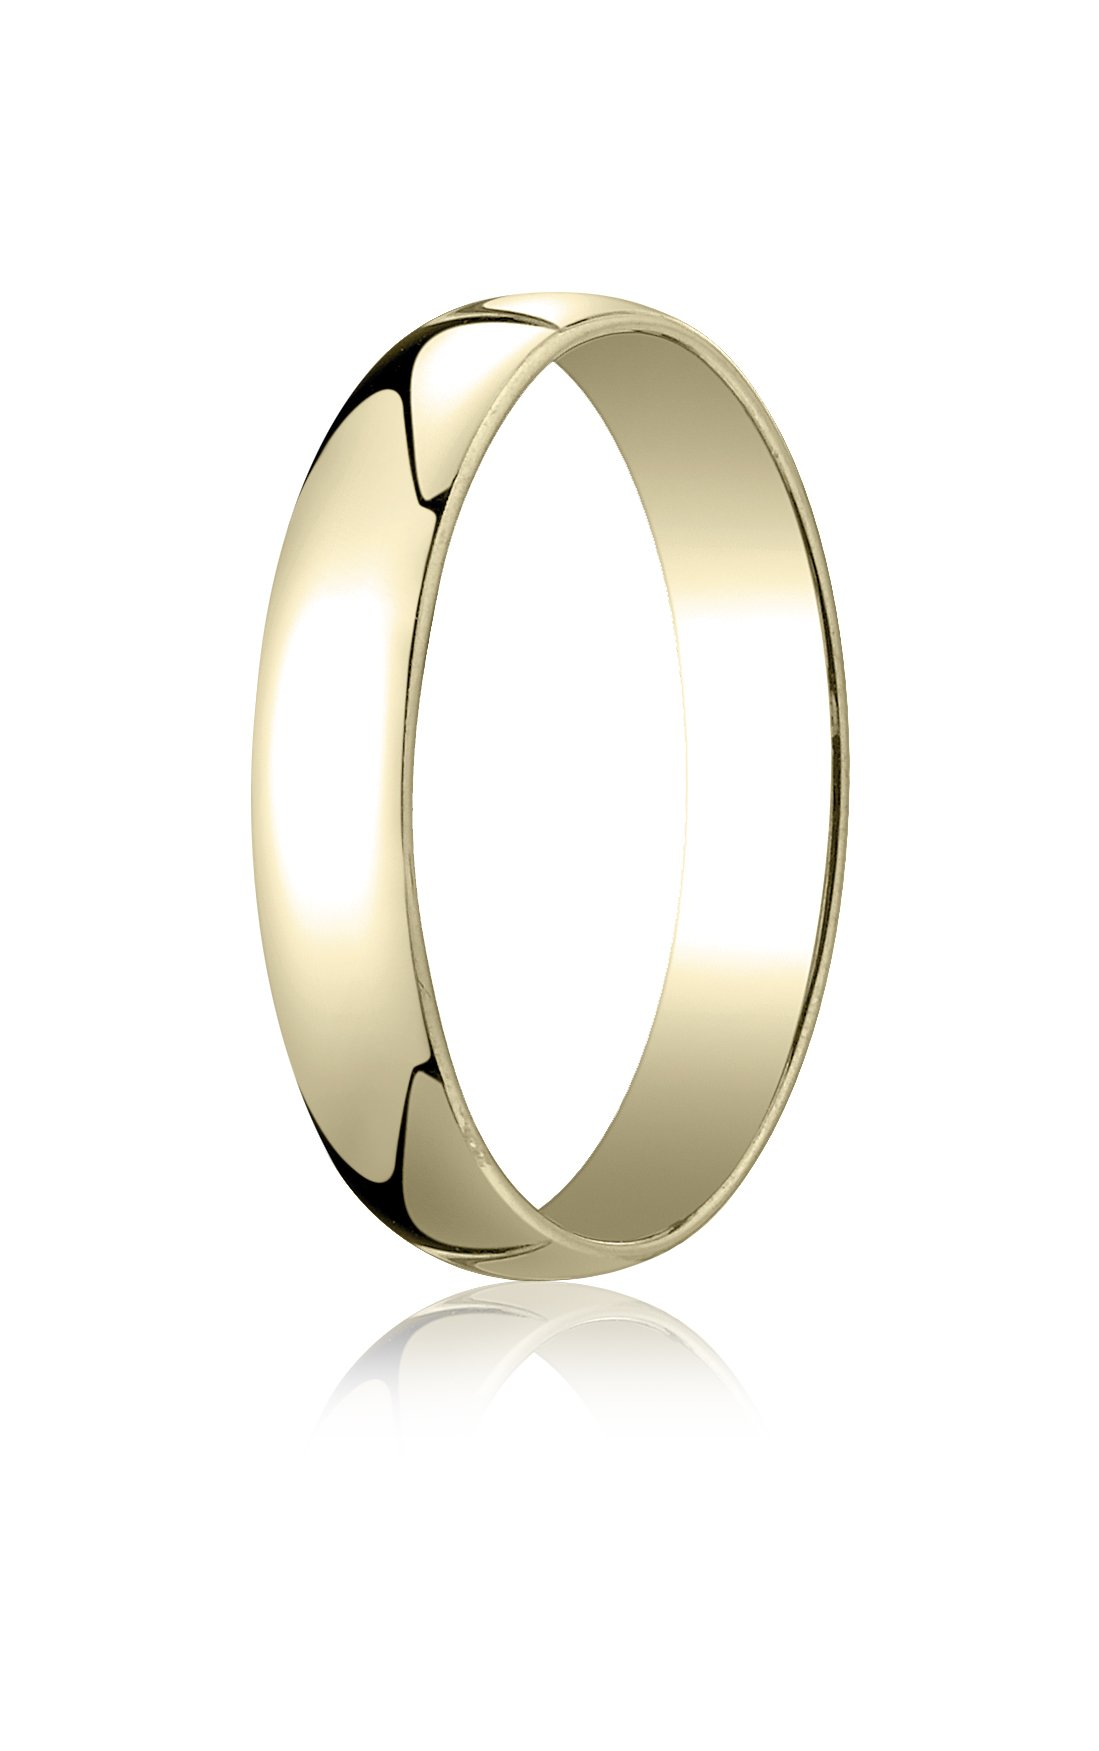 Womens 14K Yellow Gold, 4.0mm Low Dome Light Ring (sz 7.5)